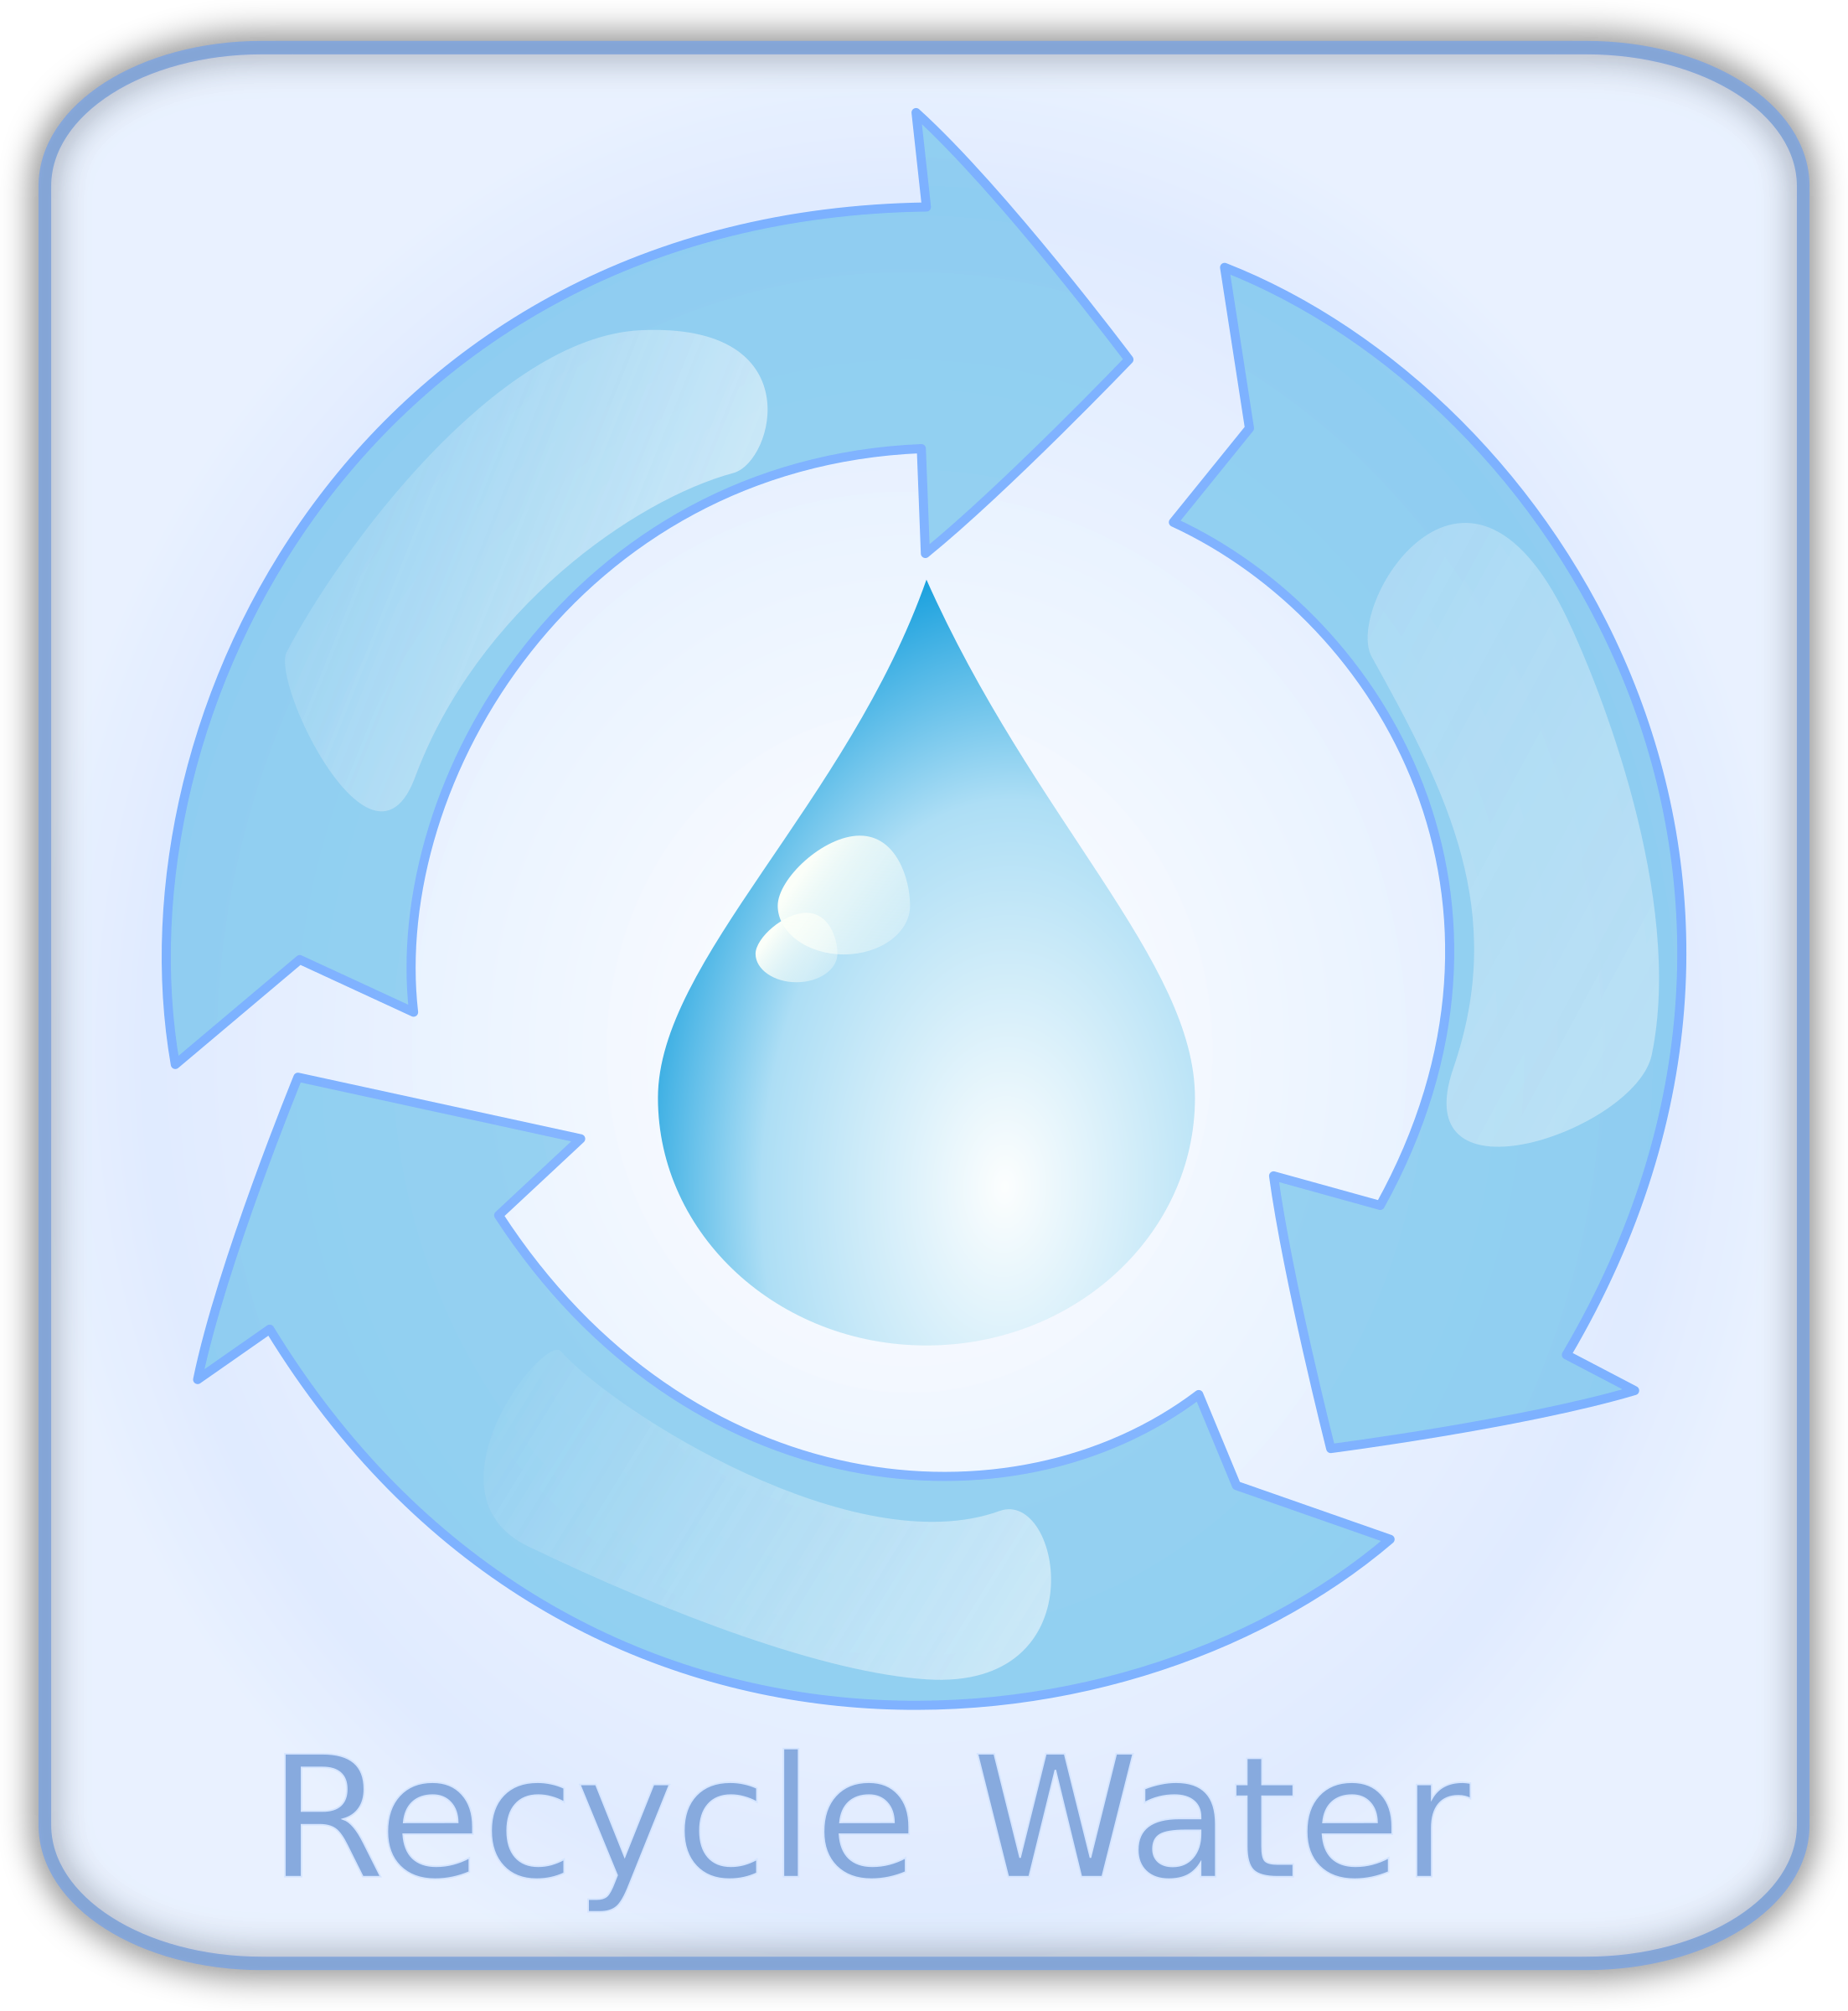 Water clipart circle. Recycle big image png